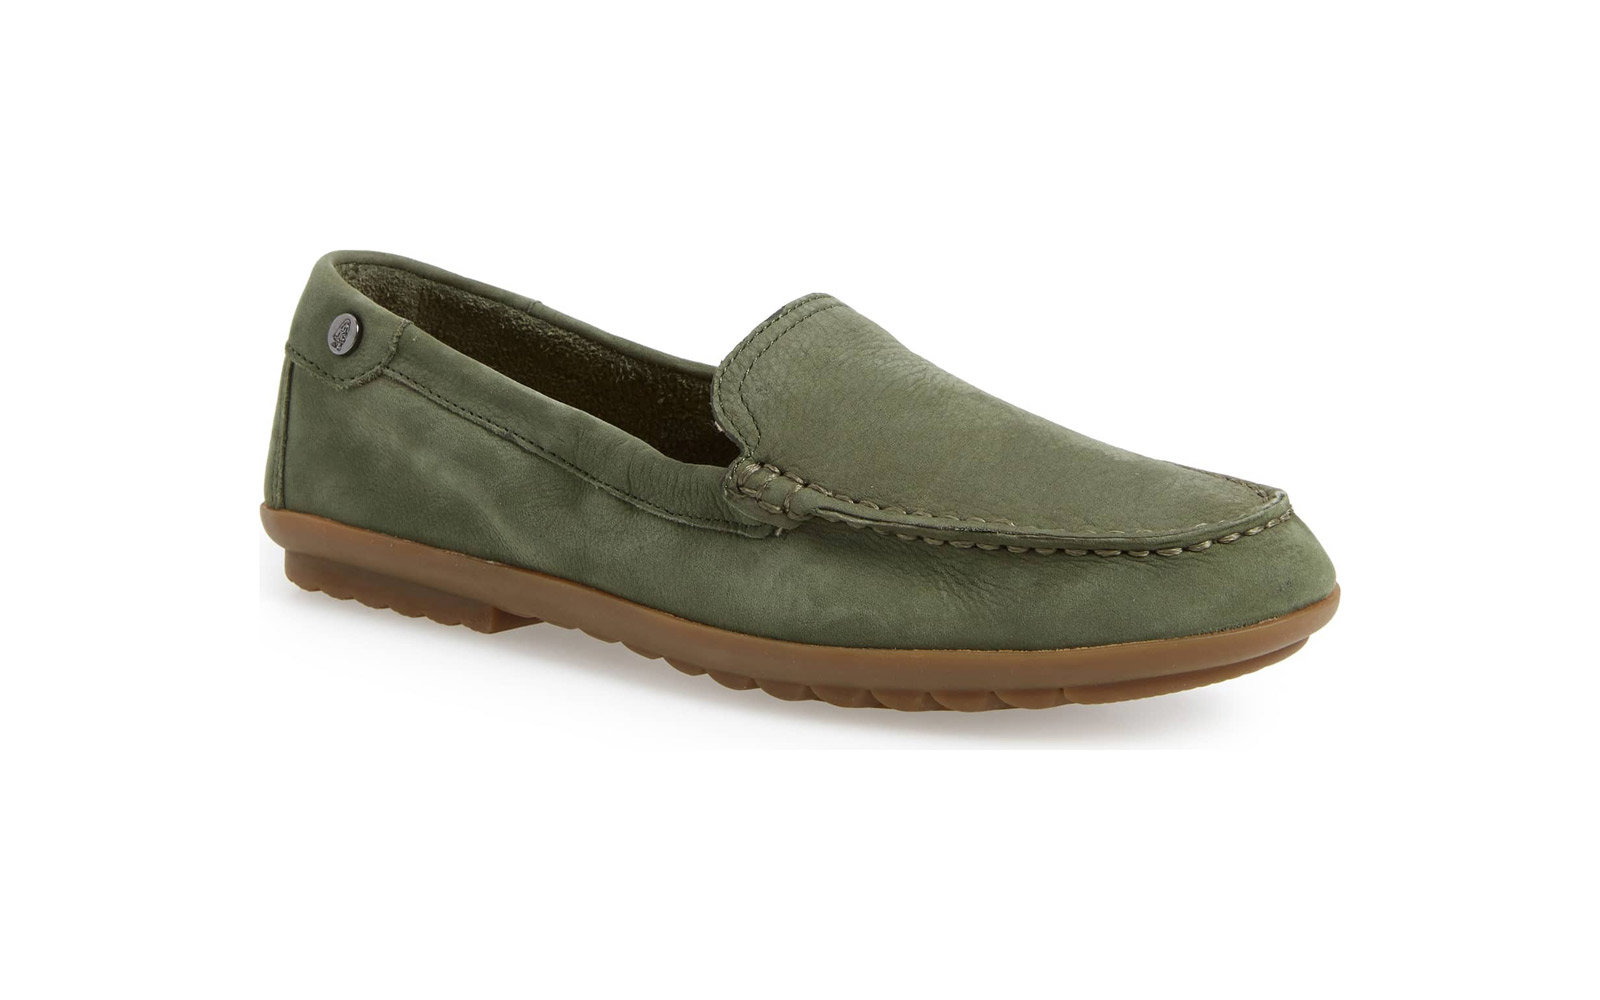 hush puppies arch support shoes for women